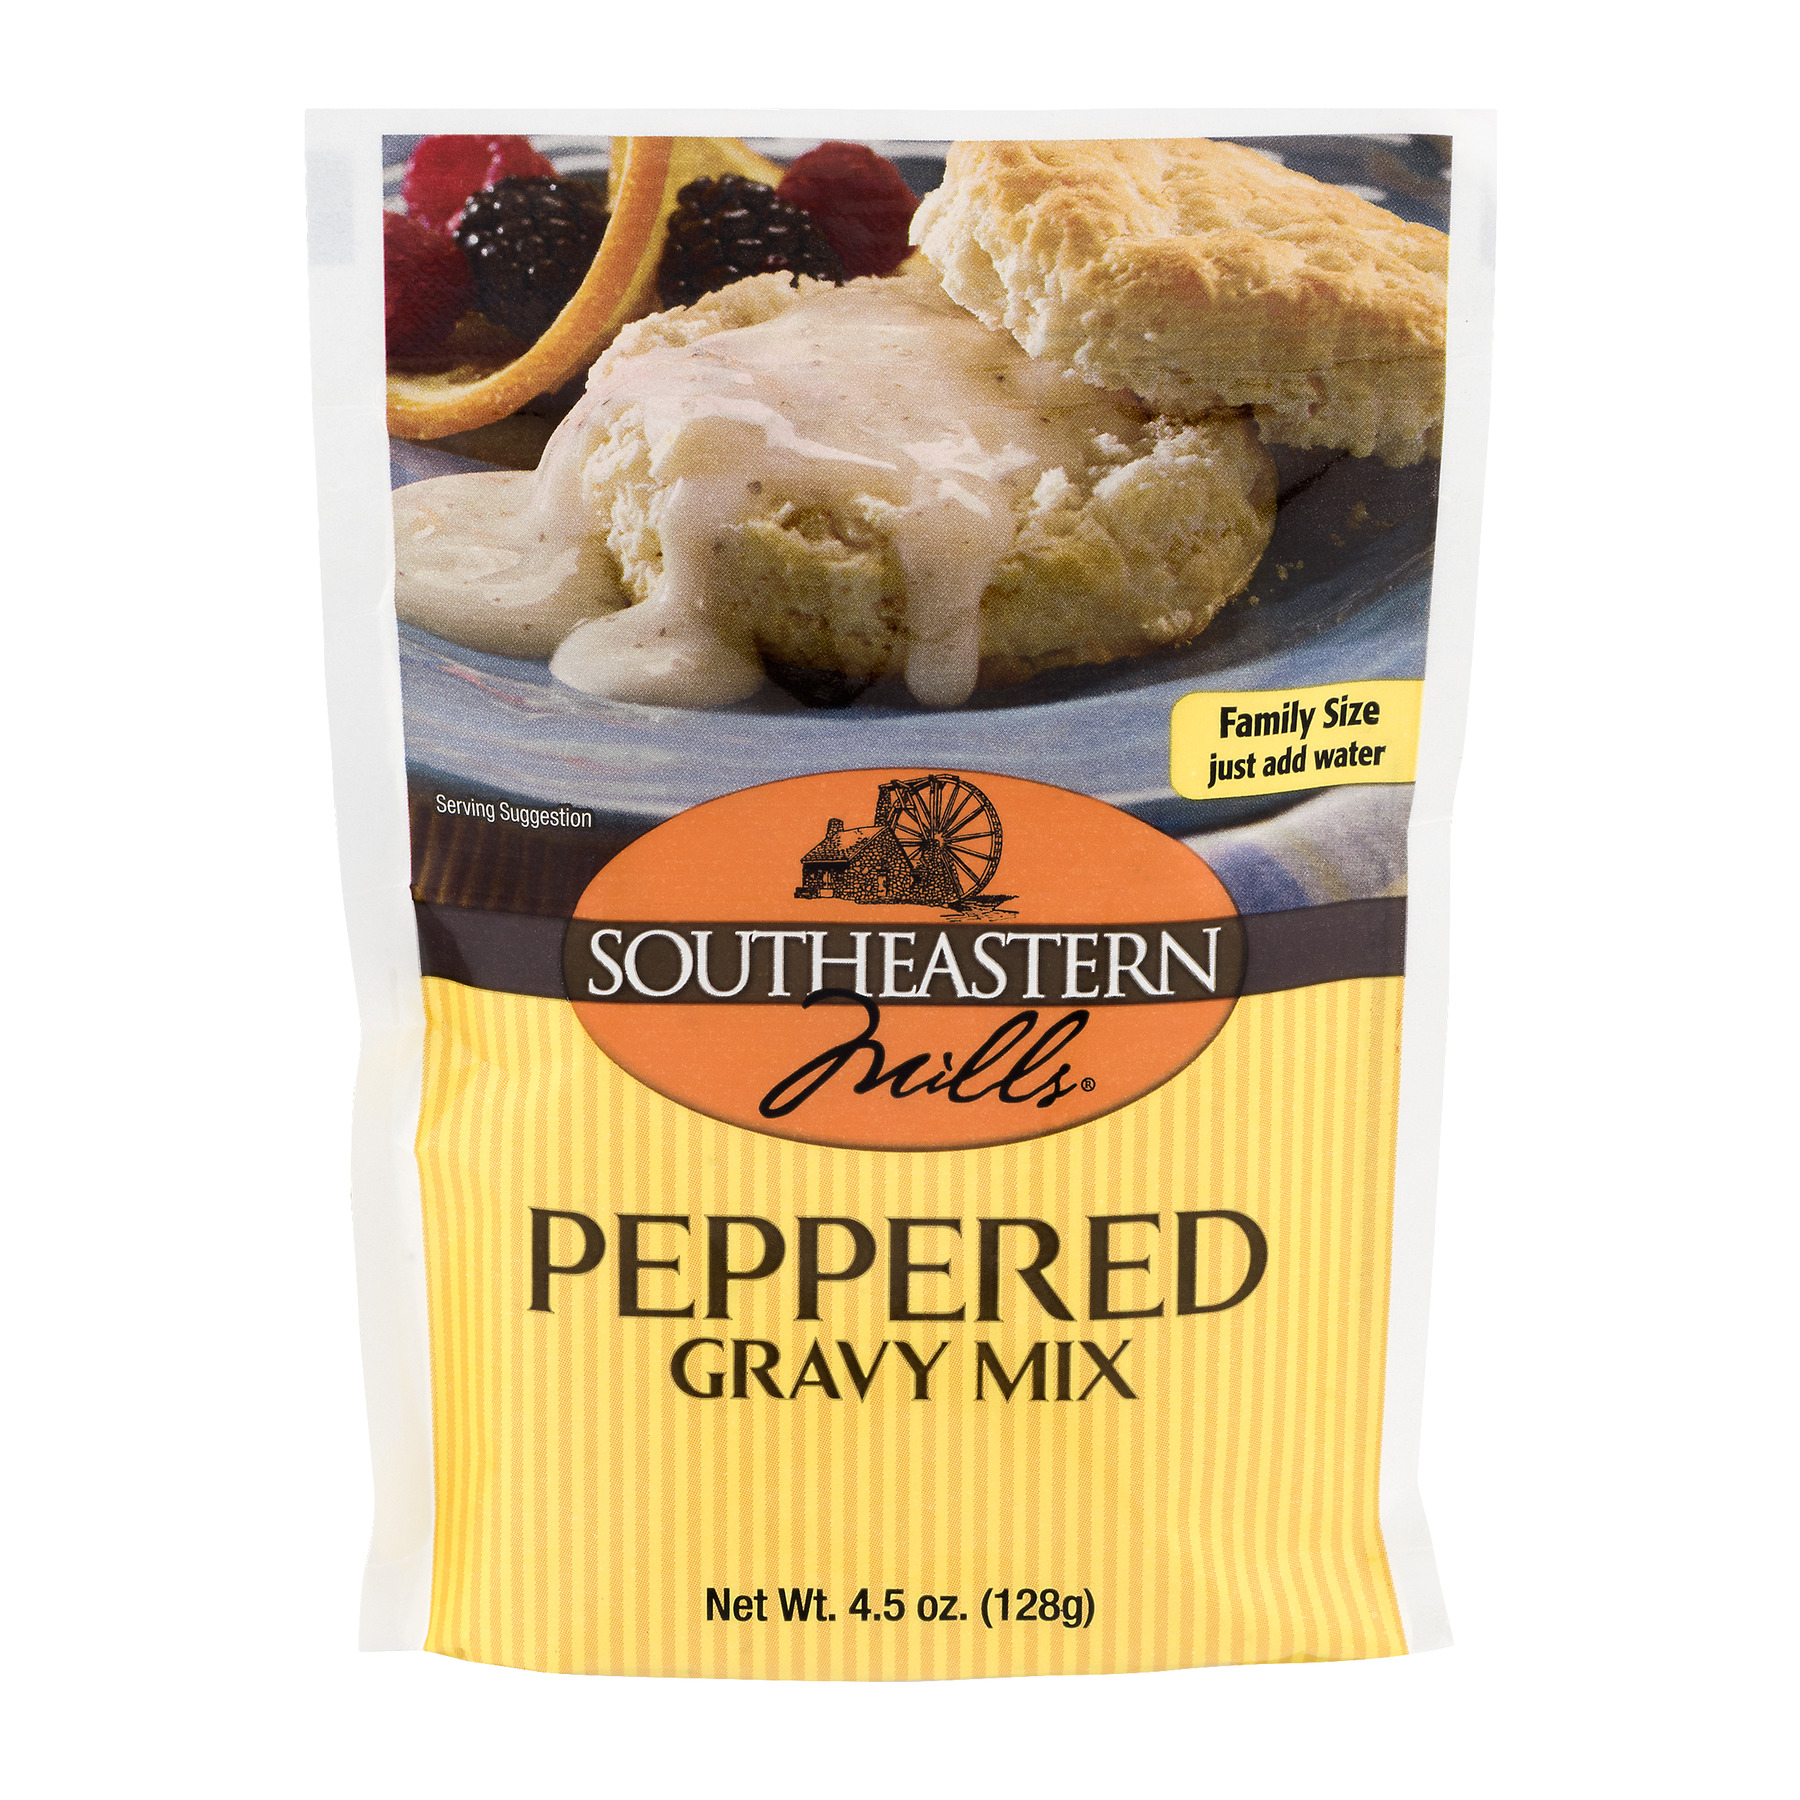 Southeastern Mills Peppered Gravy Mix, 4.5 OZ